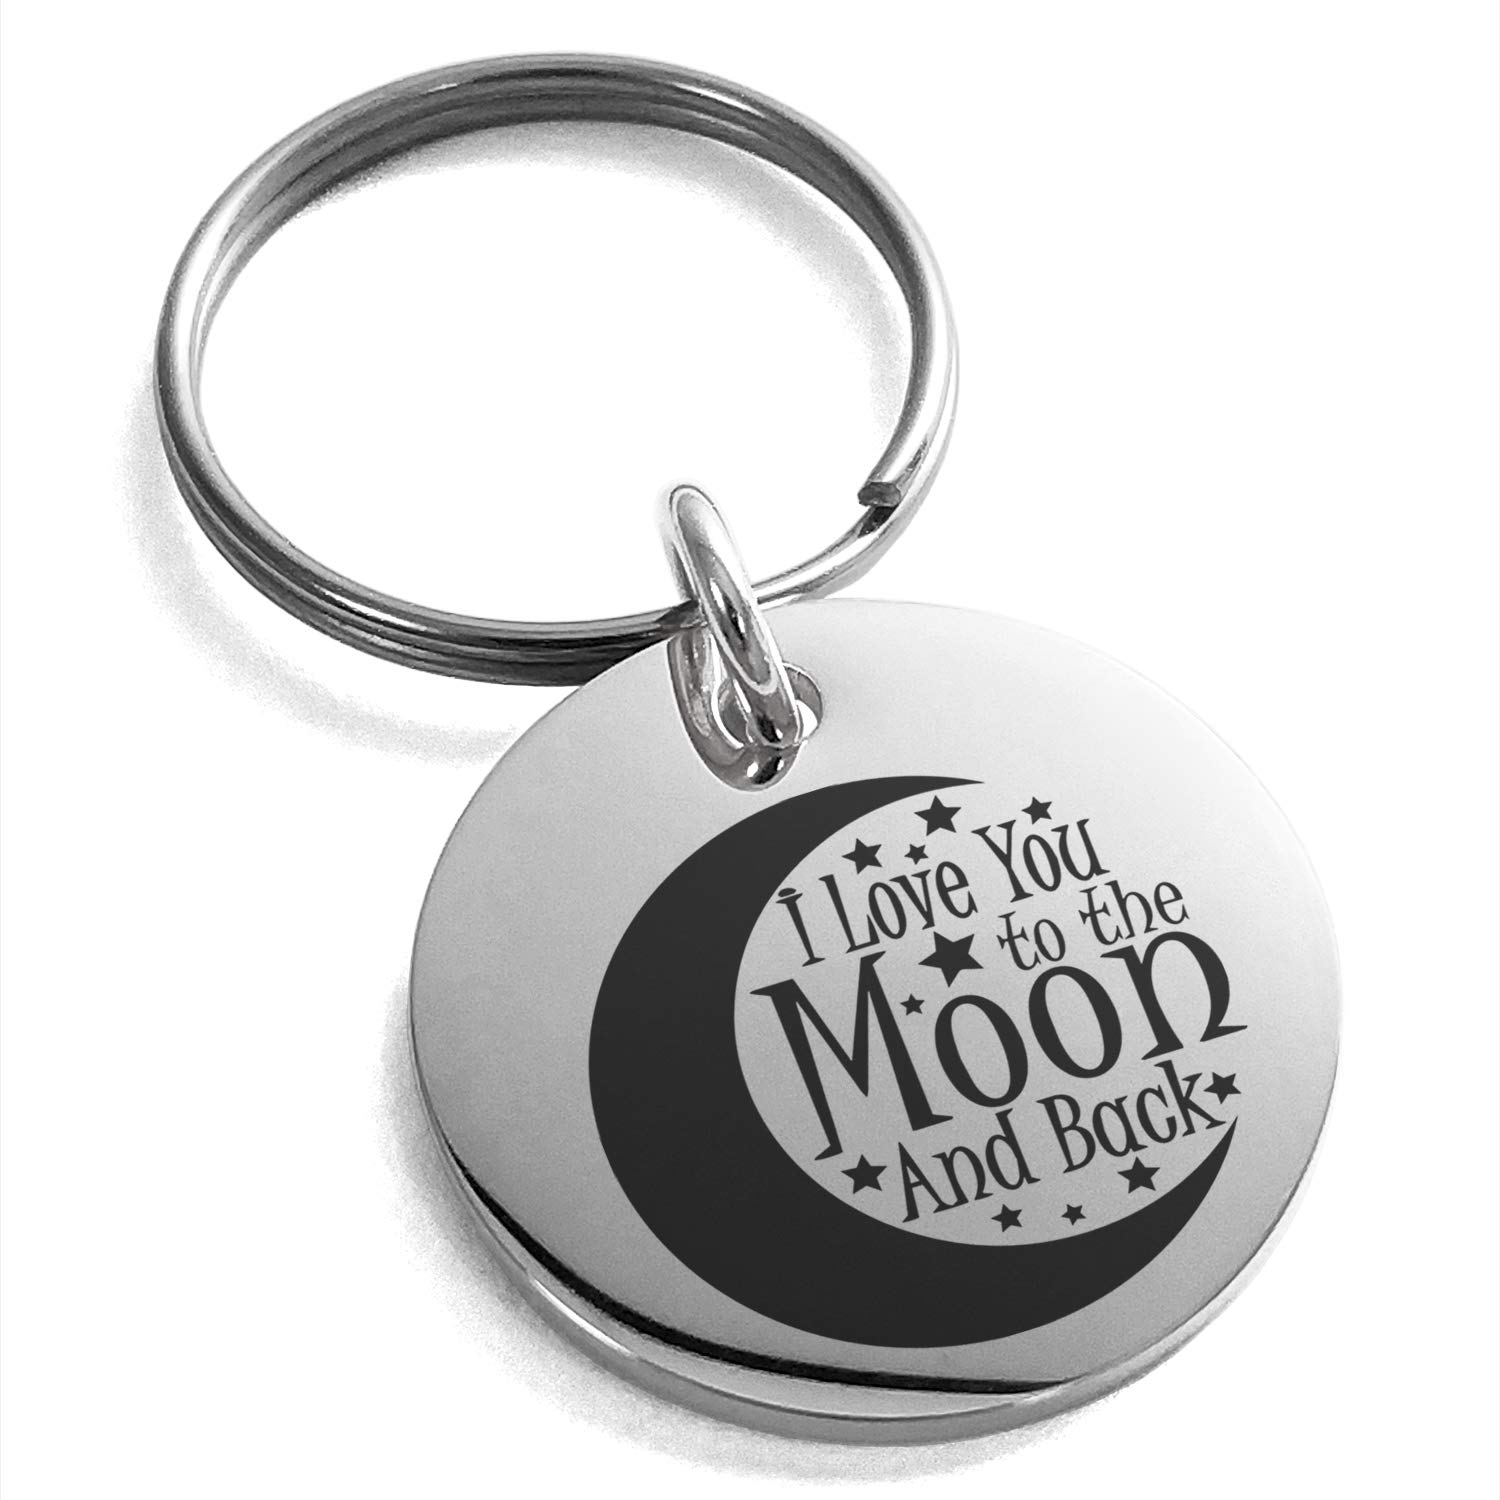 Tioneer Stainless Steel Crescent I Love You to The Moon and Back Engraved Small Medallion Circle Charm Keychain Keyring